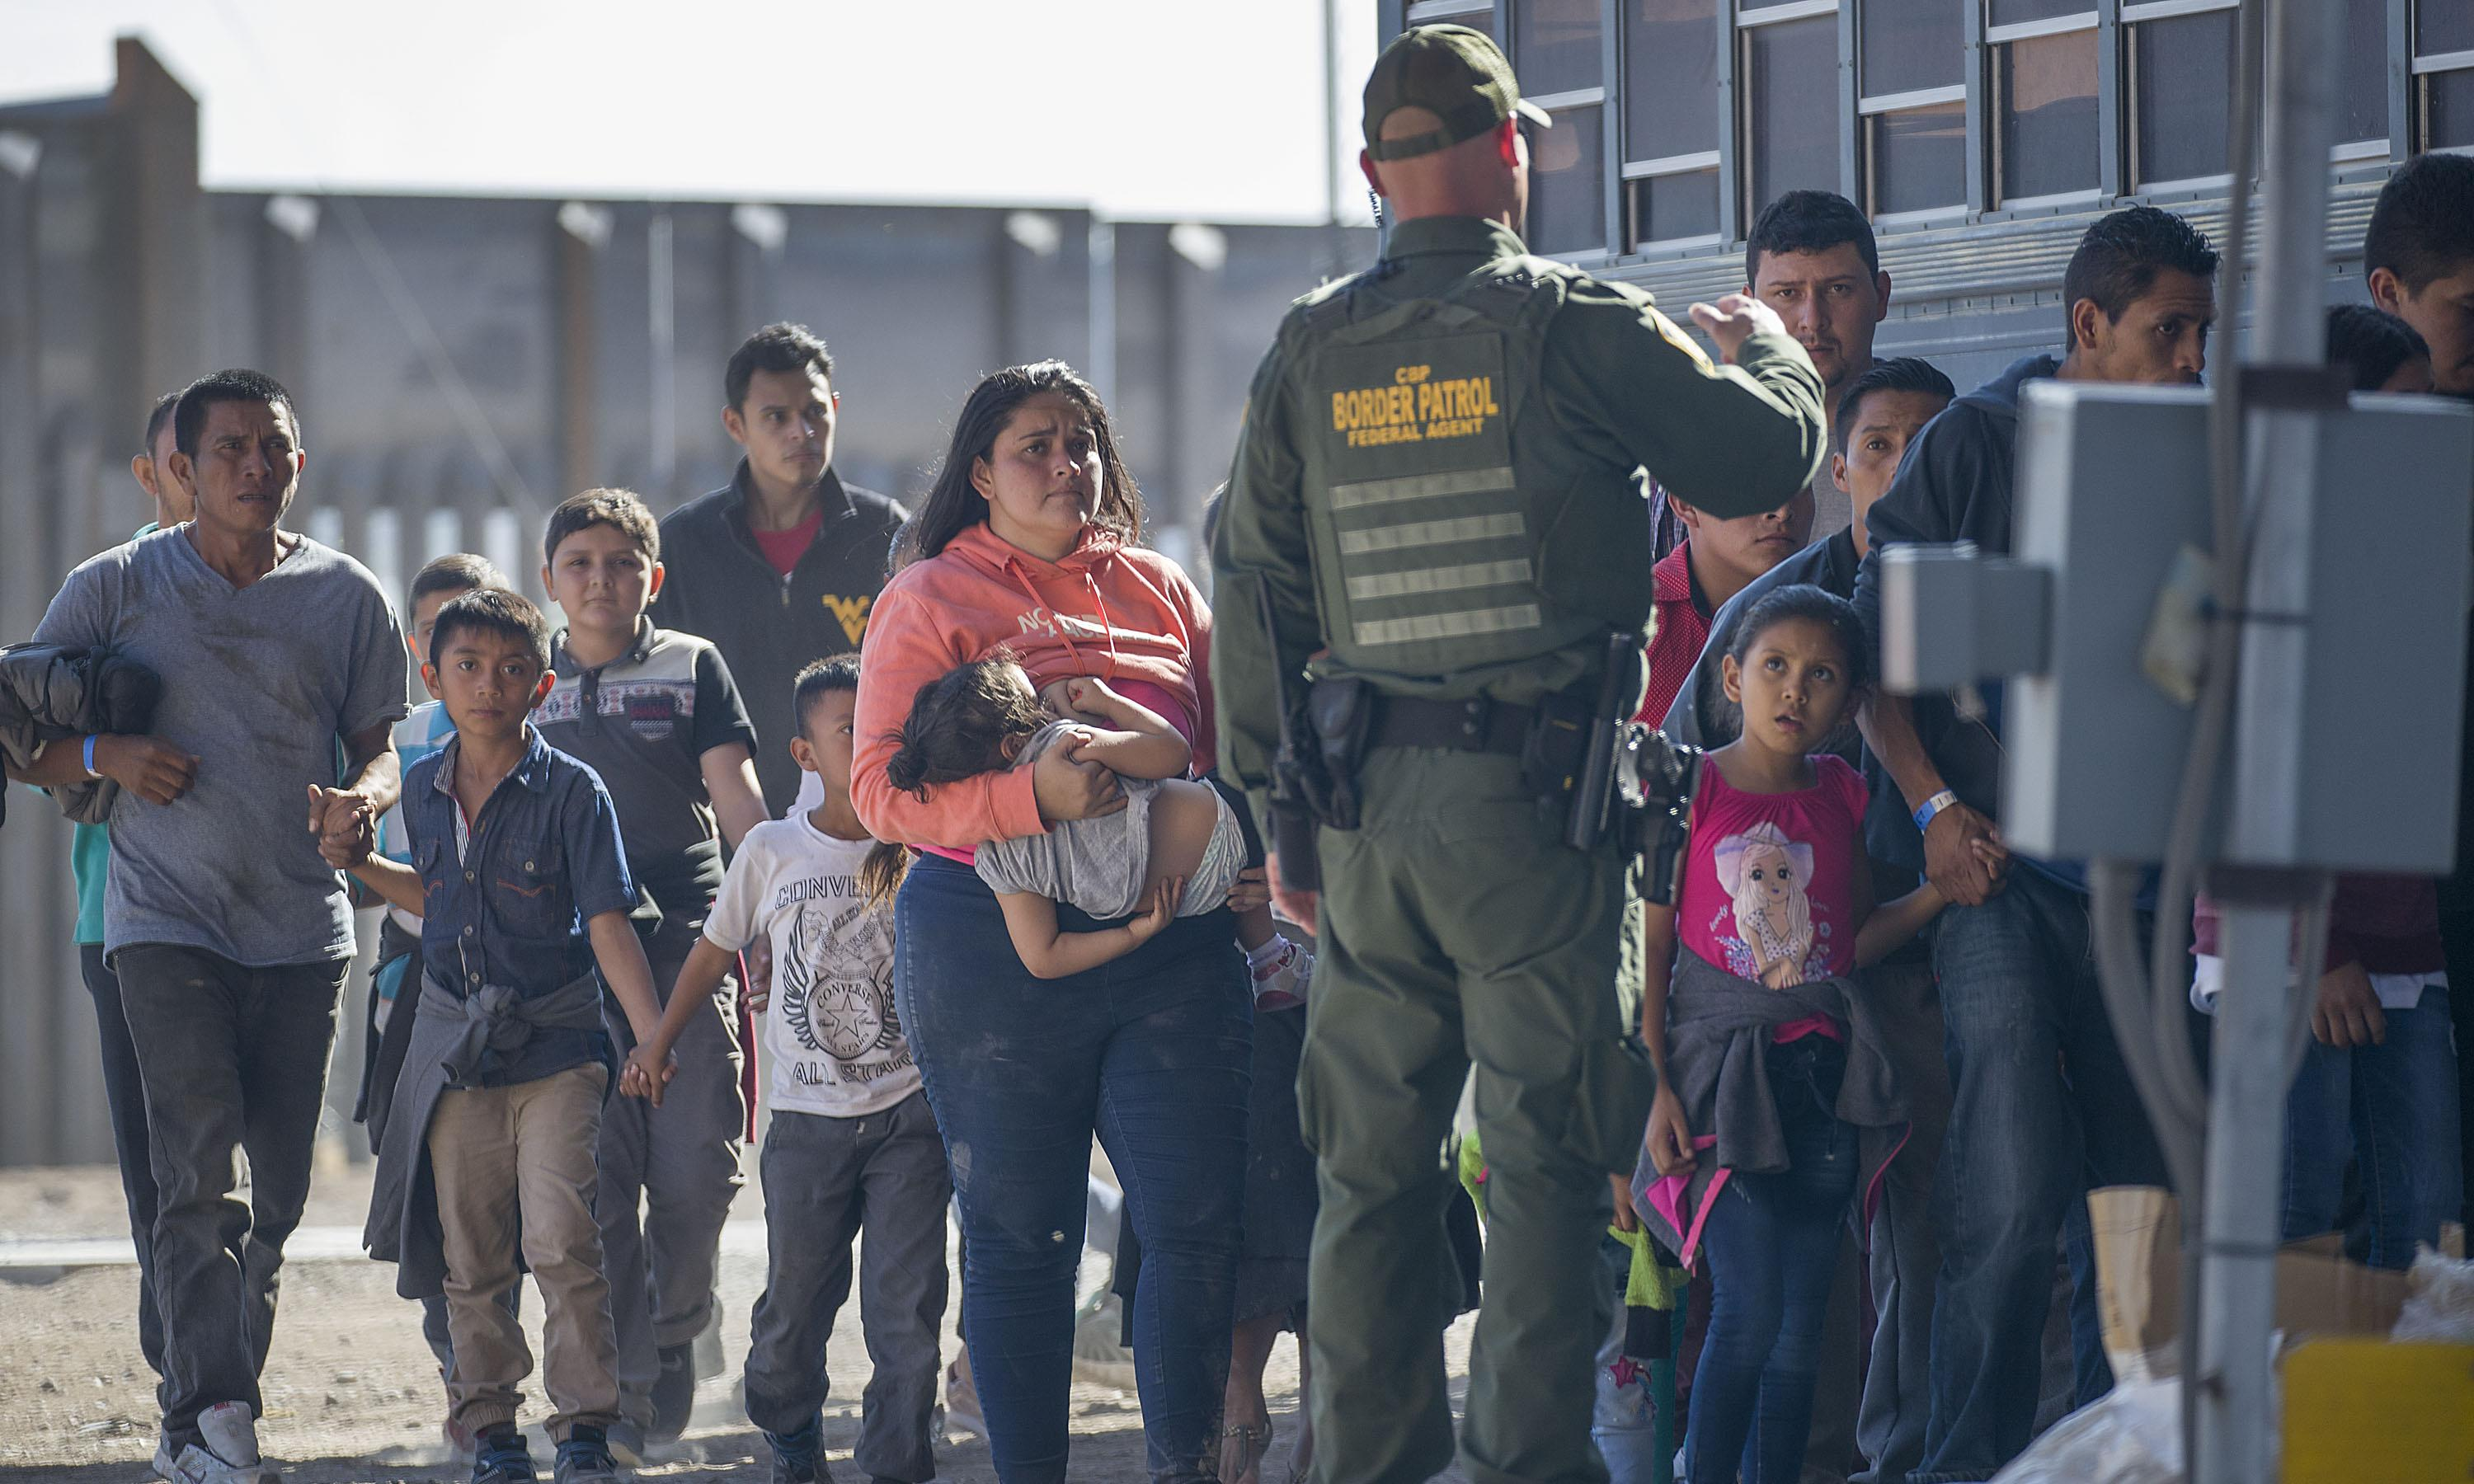 Court order allows Trump asylum rules to take effect at parts of border